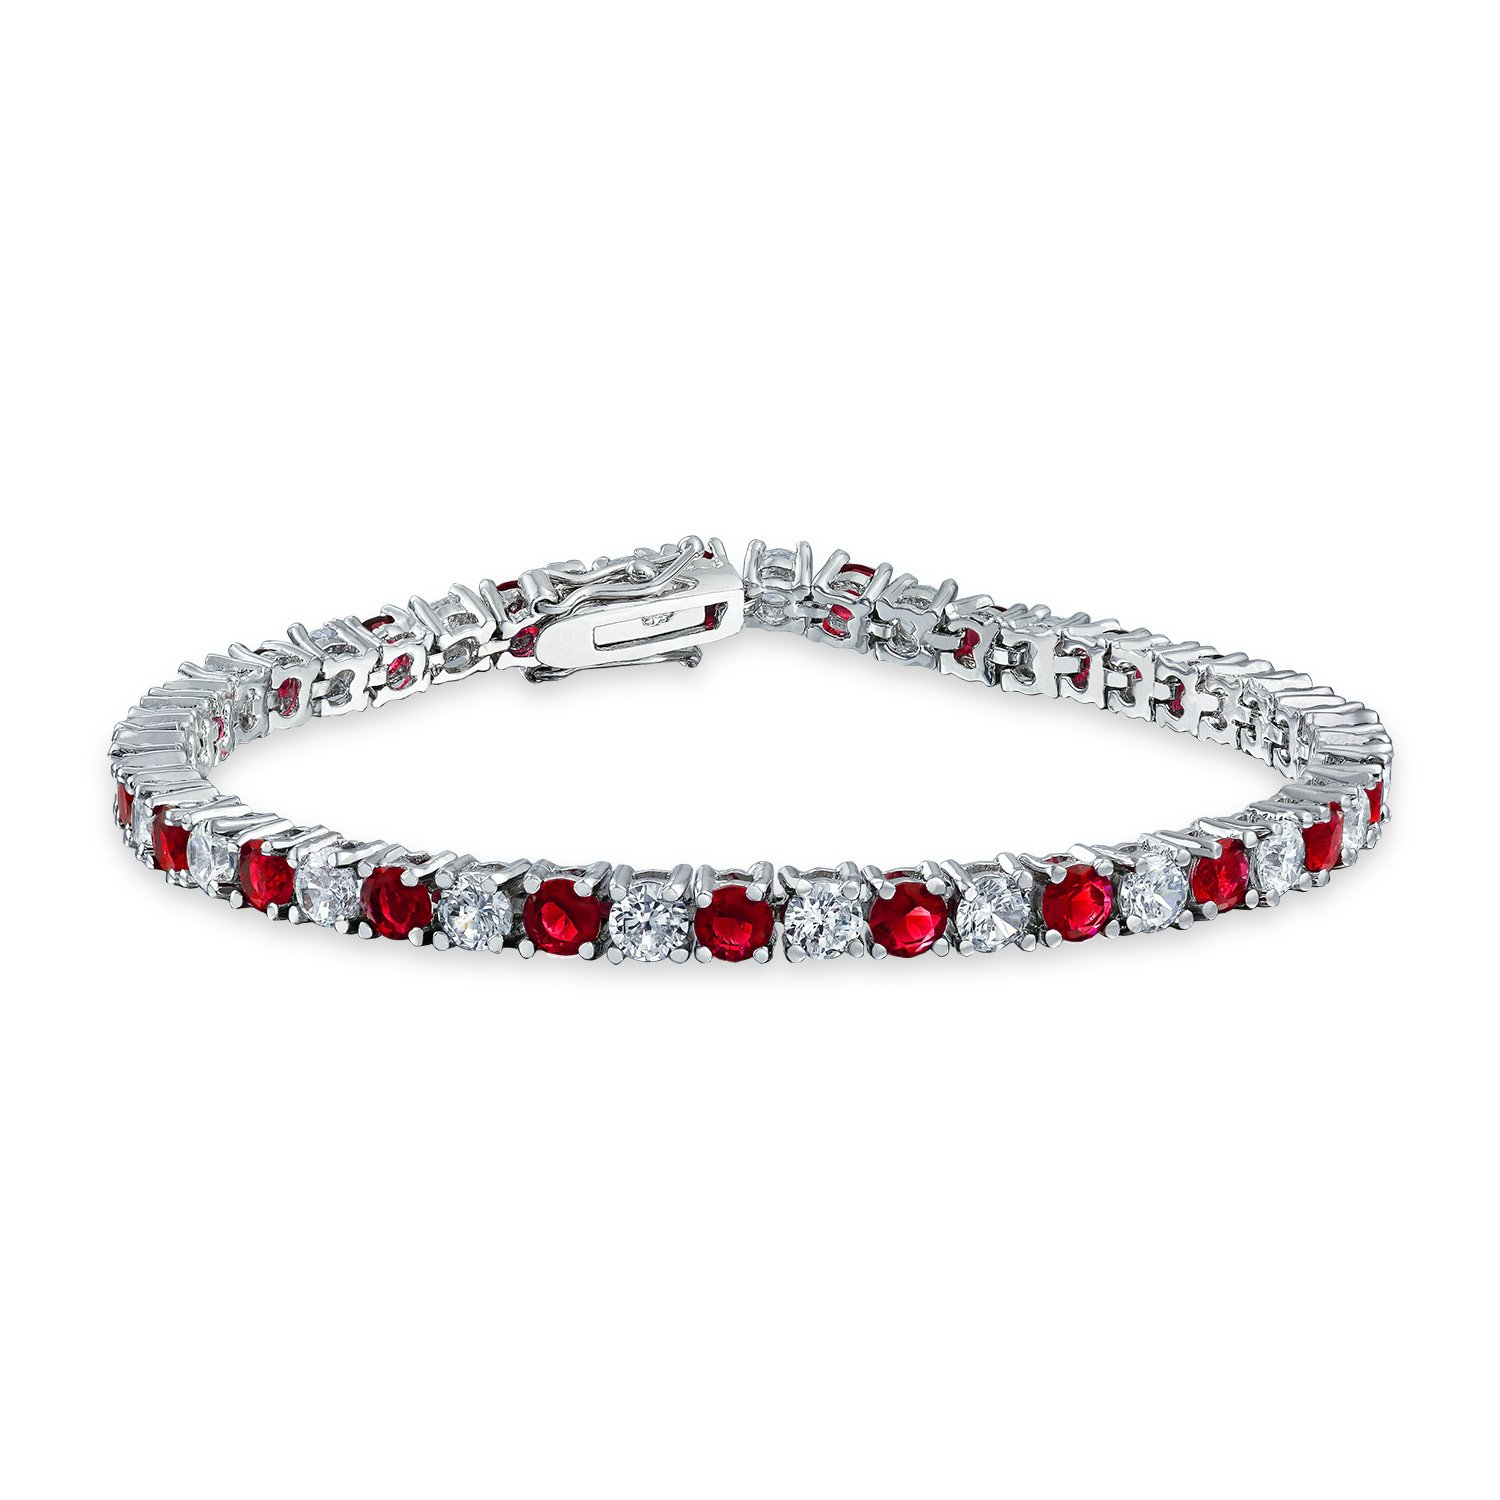 Beautiful Eternity Ruby and CZ Diamond Bracelet Is Crafted In 14k White Gold plating